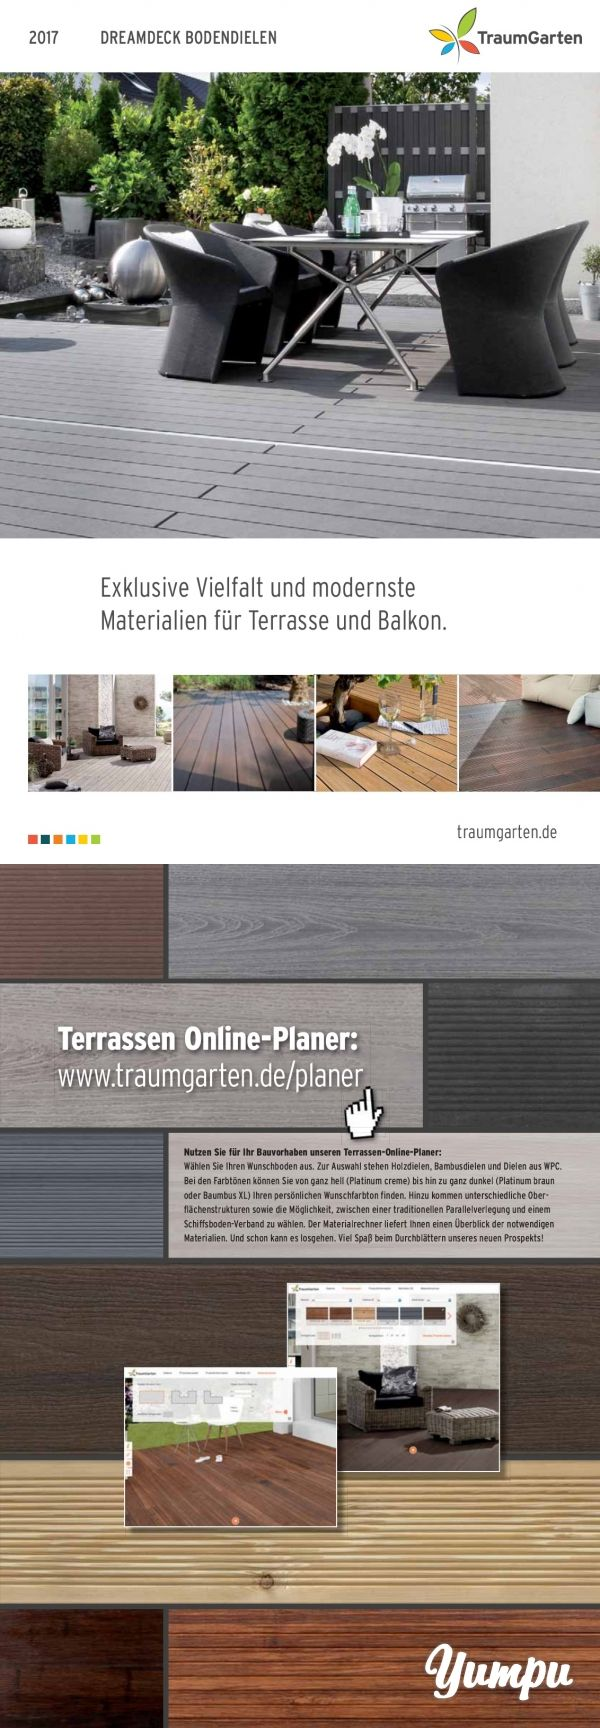 die besten 25 wpc terrassendielen verlegen ideen auf pinterest wpc verlegen wpc. Black Bedroom Furniture Sets. Home Design Ideas